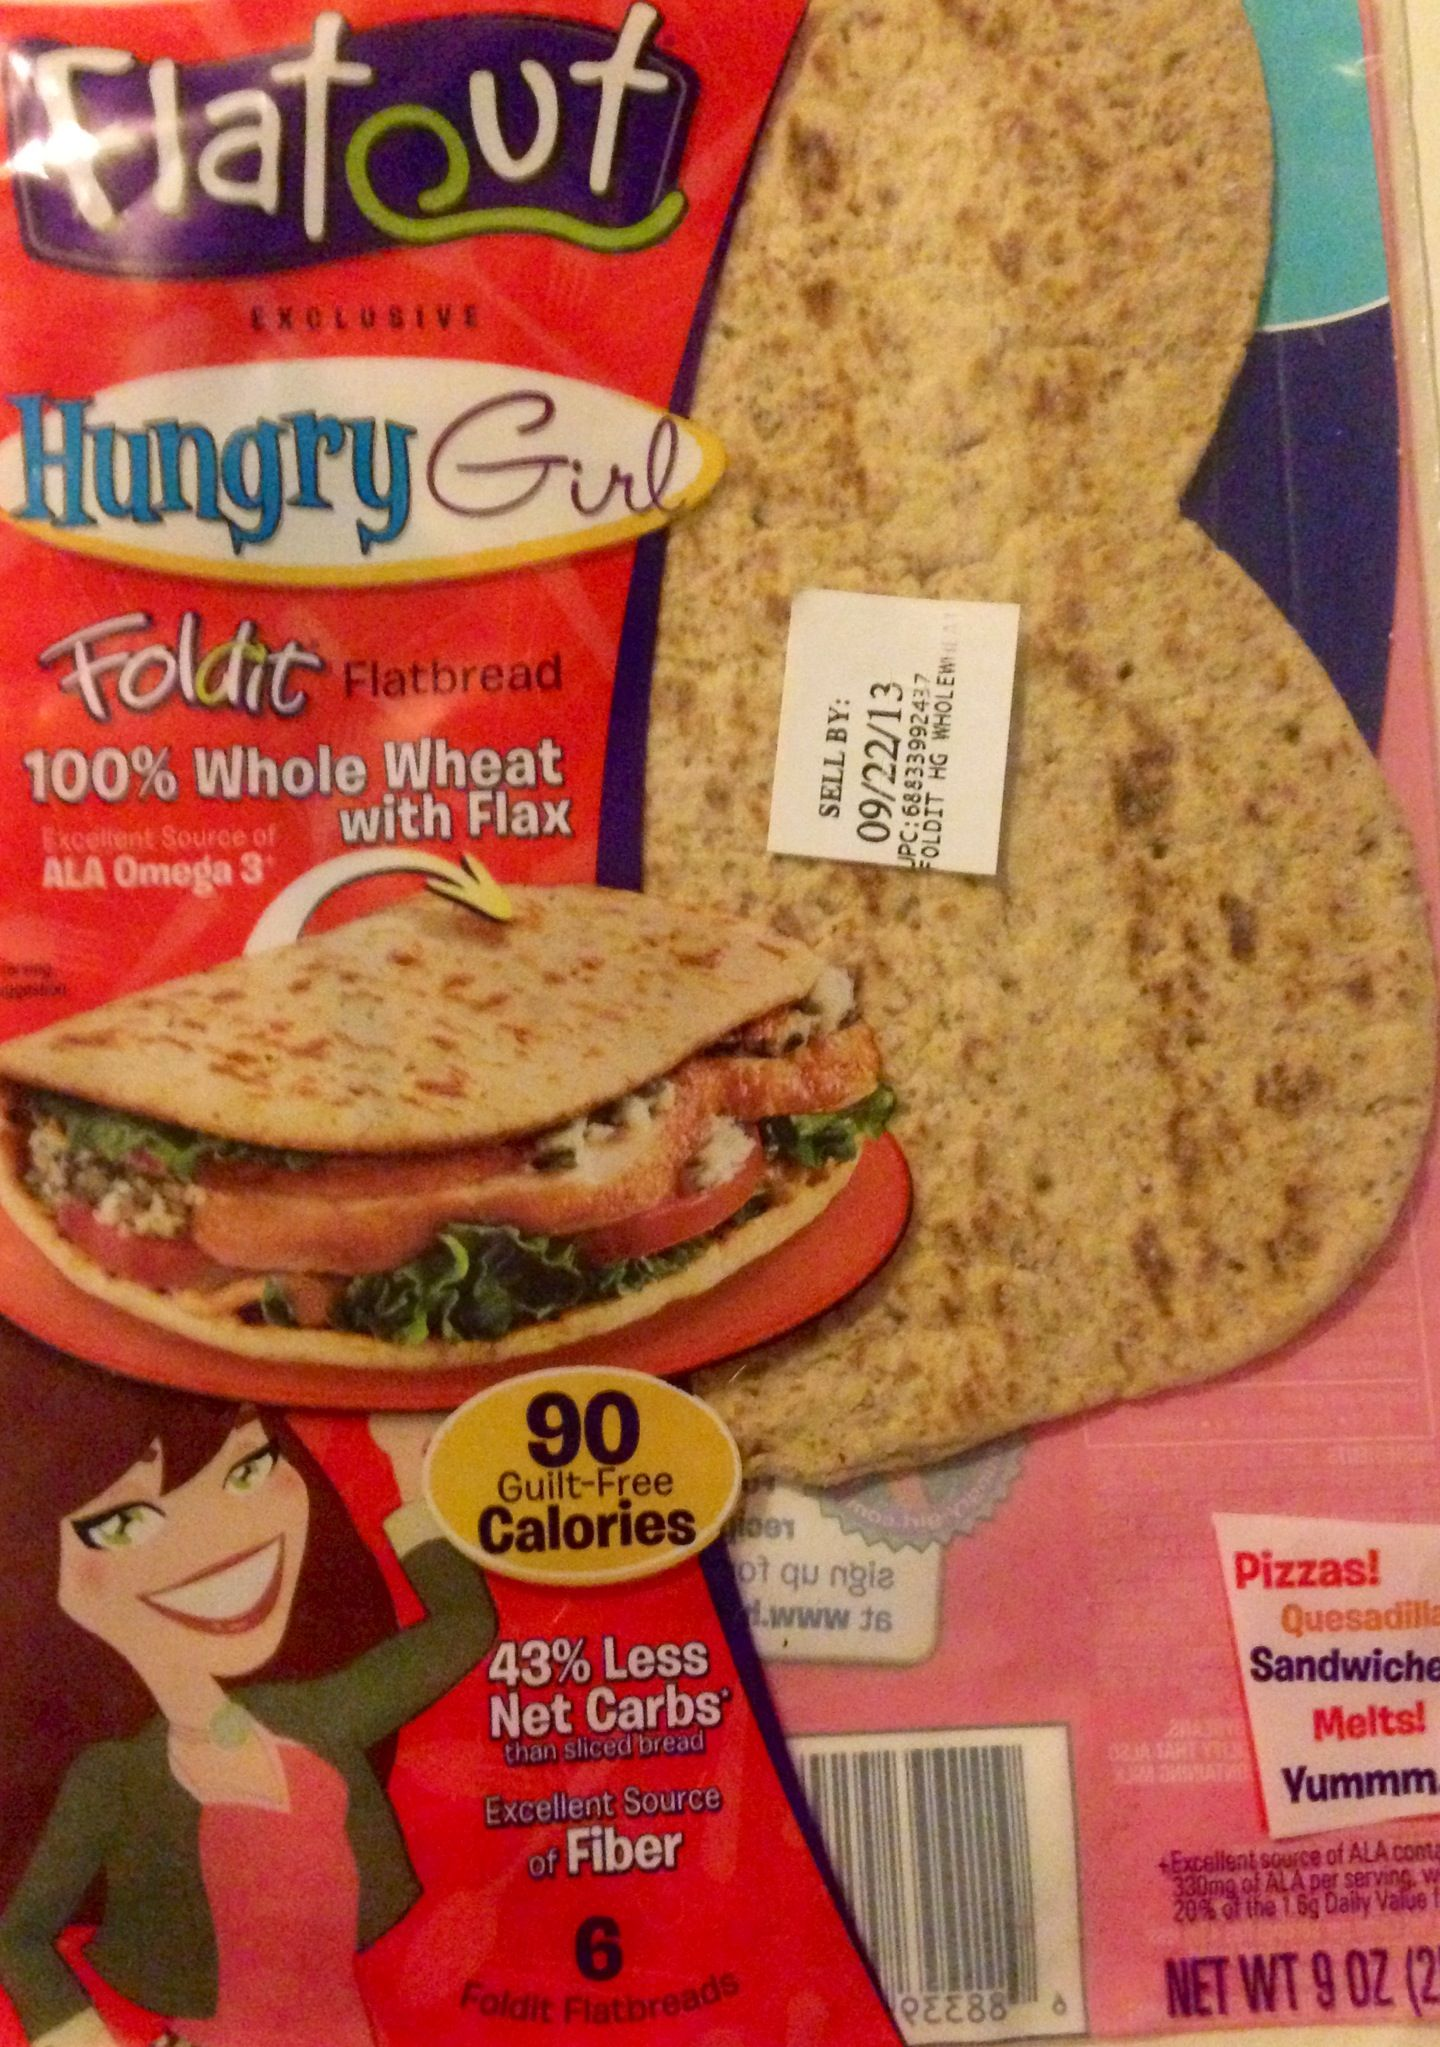 Best lowcarb and high fiber way to have bread and eat it